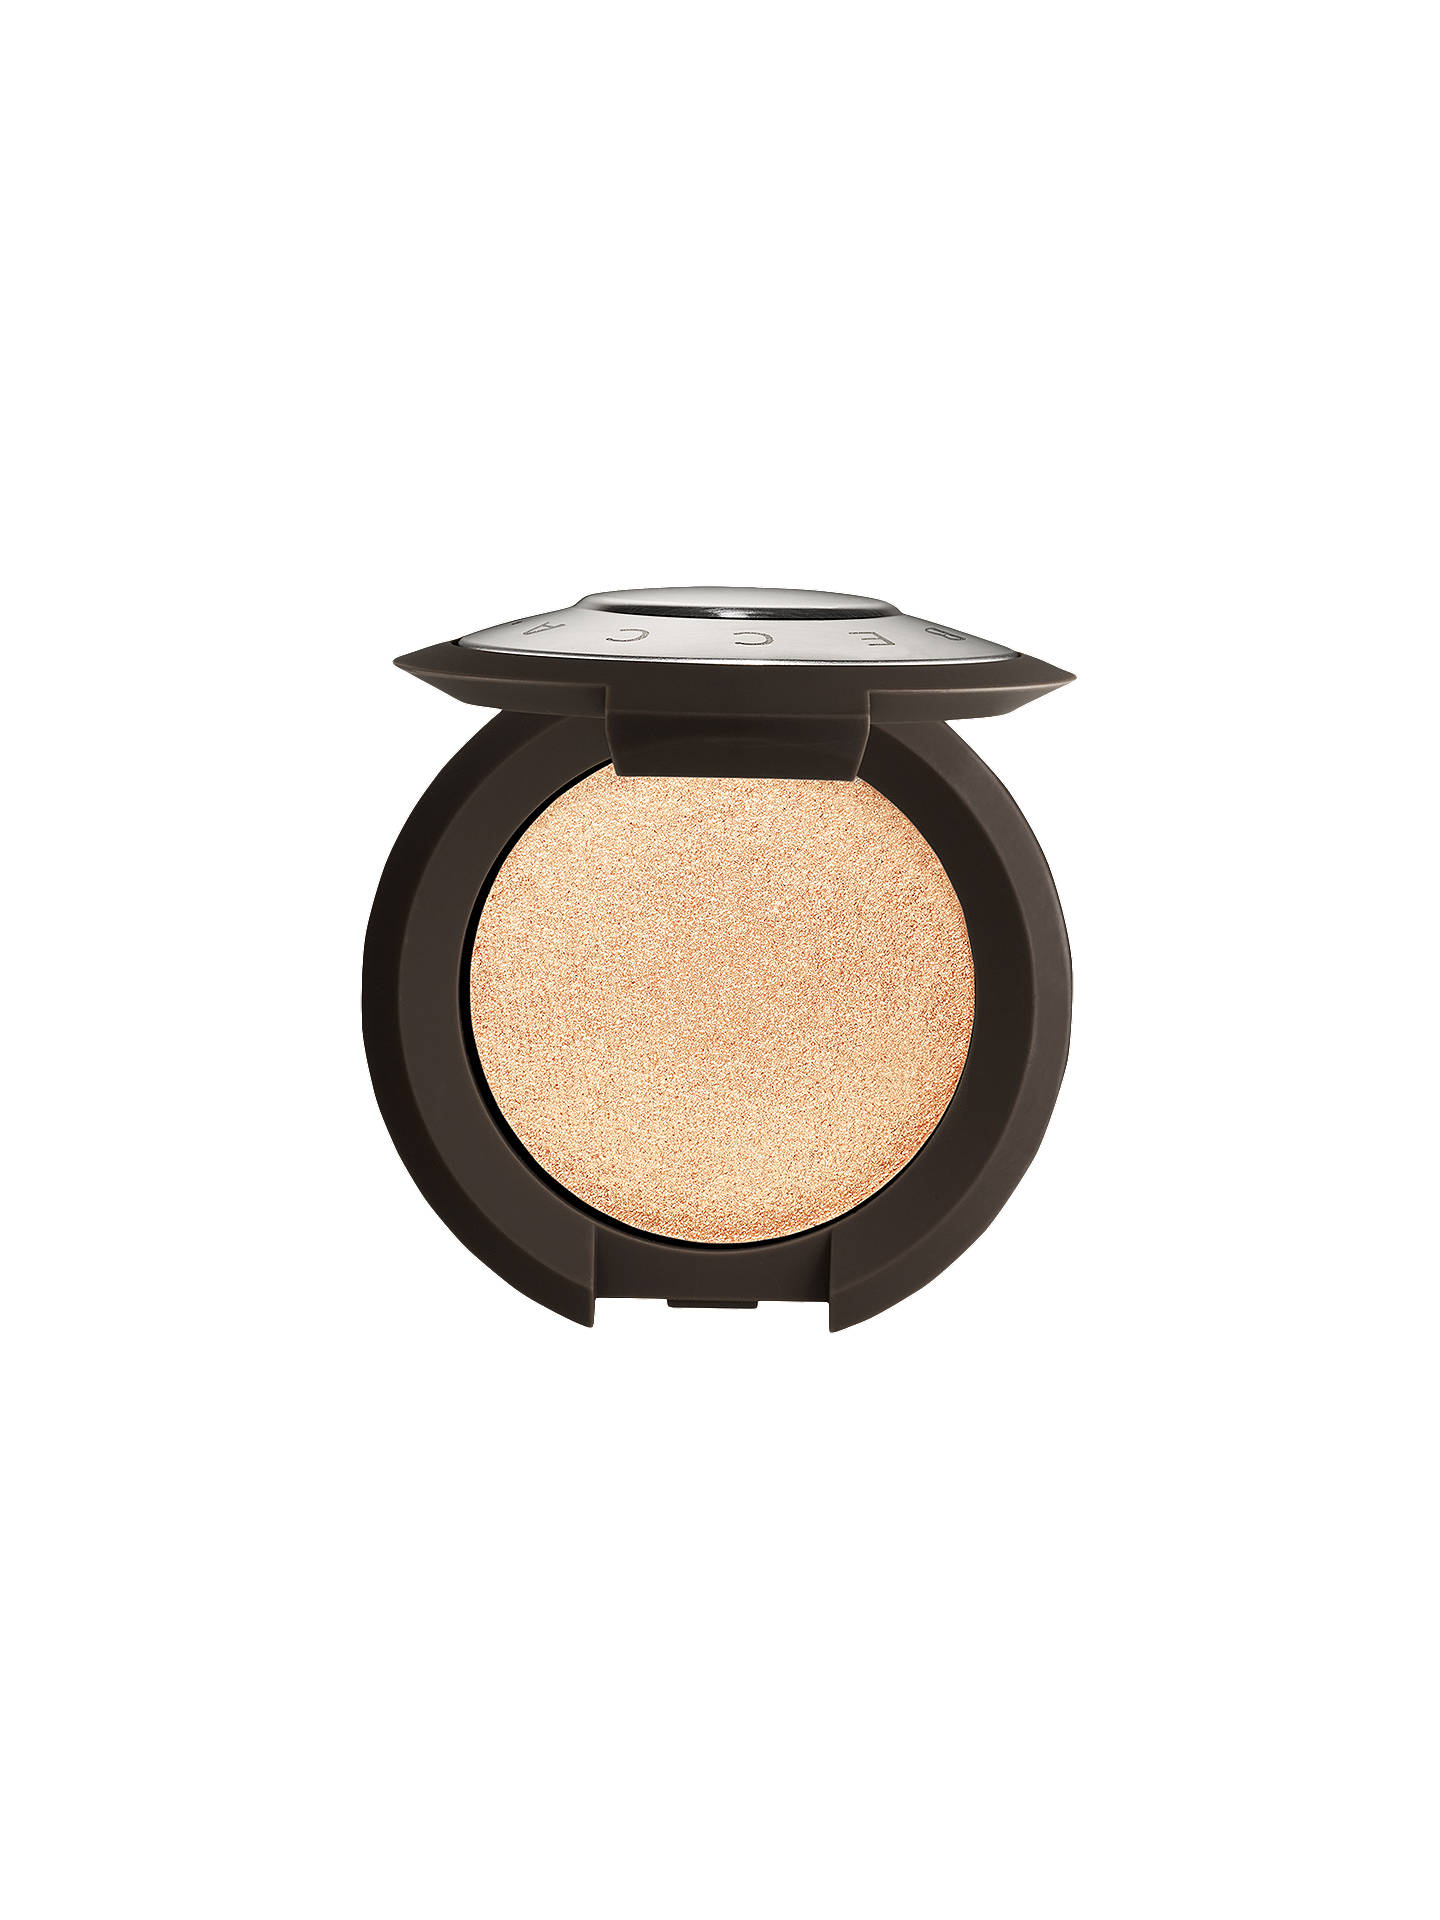 Becca Shimmering Skin Perfector™ Pressed Highlighter Mini, Moonstone by Becca Shimmering Skin Perfector